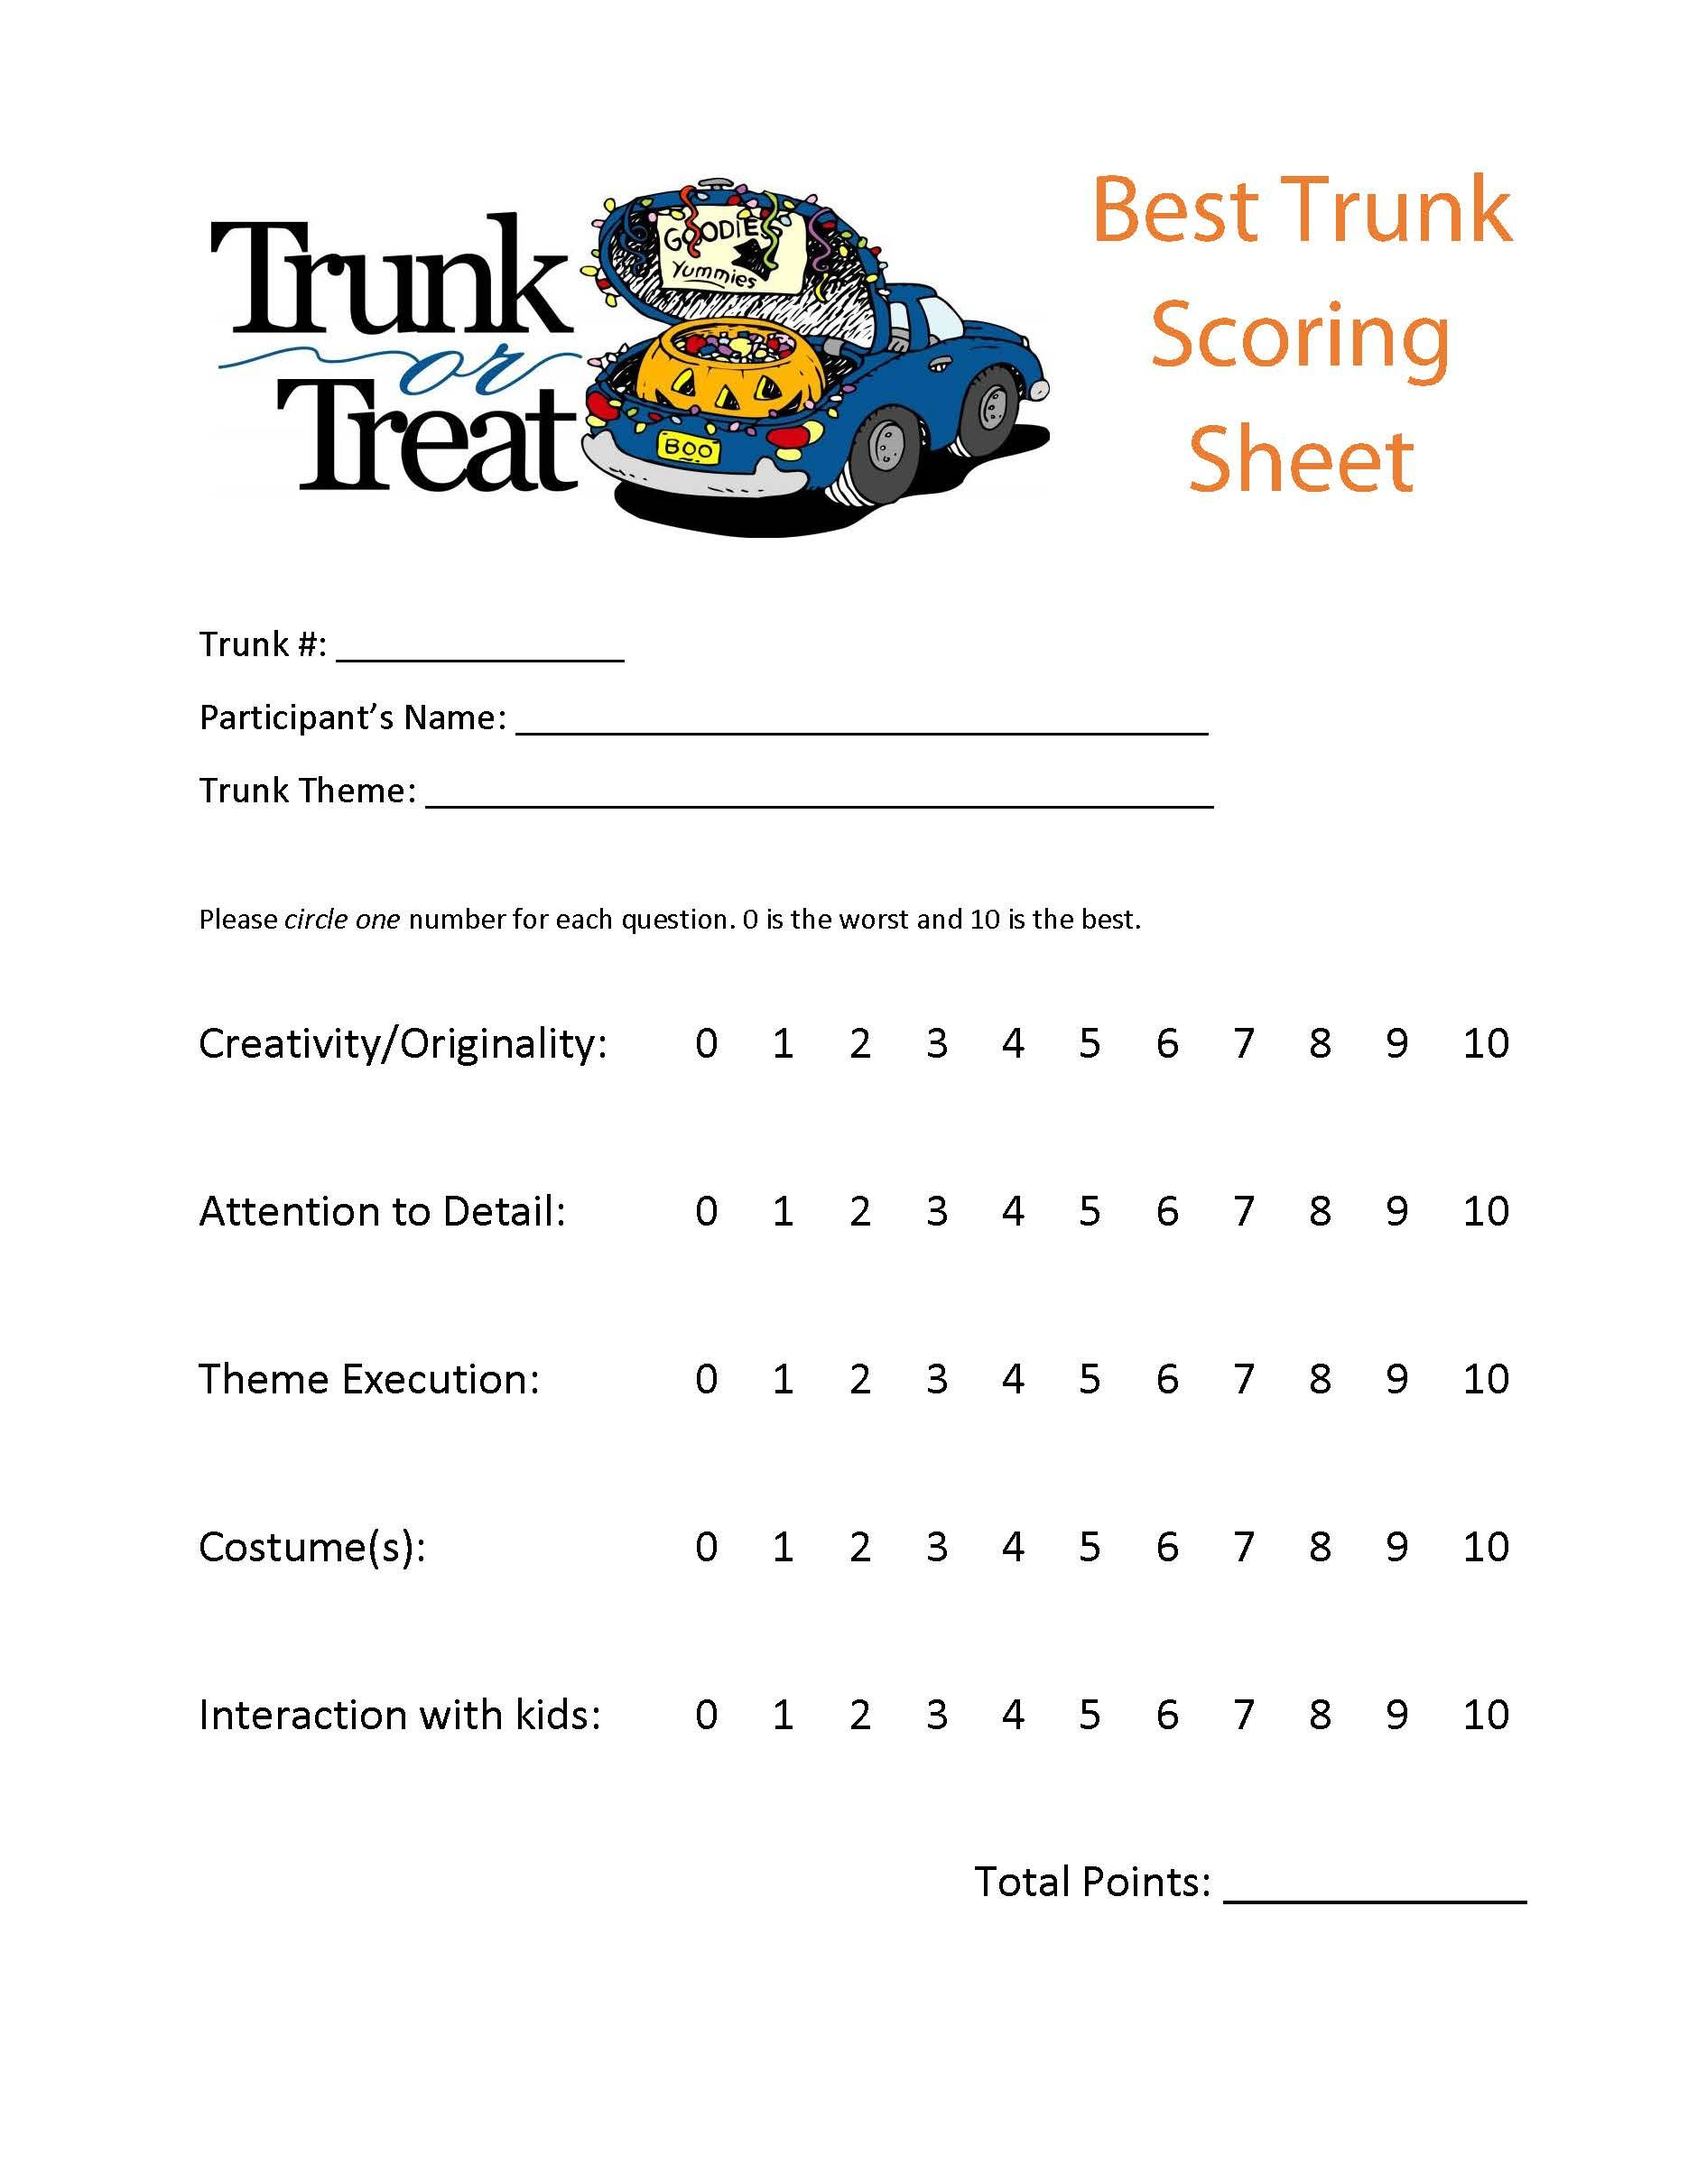 Trunk Or Treat Scoring Sheet Can Be Used For Best Trunk Judging - Car show judging sheet